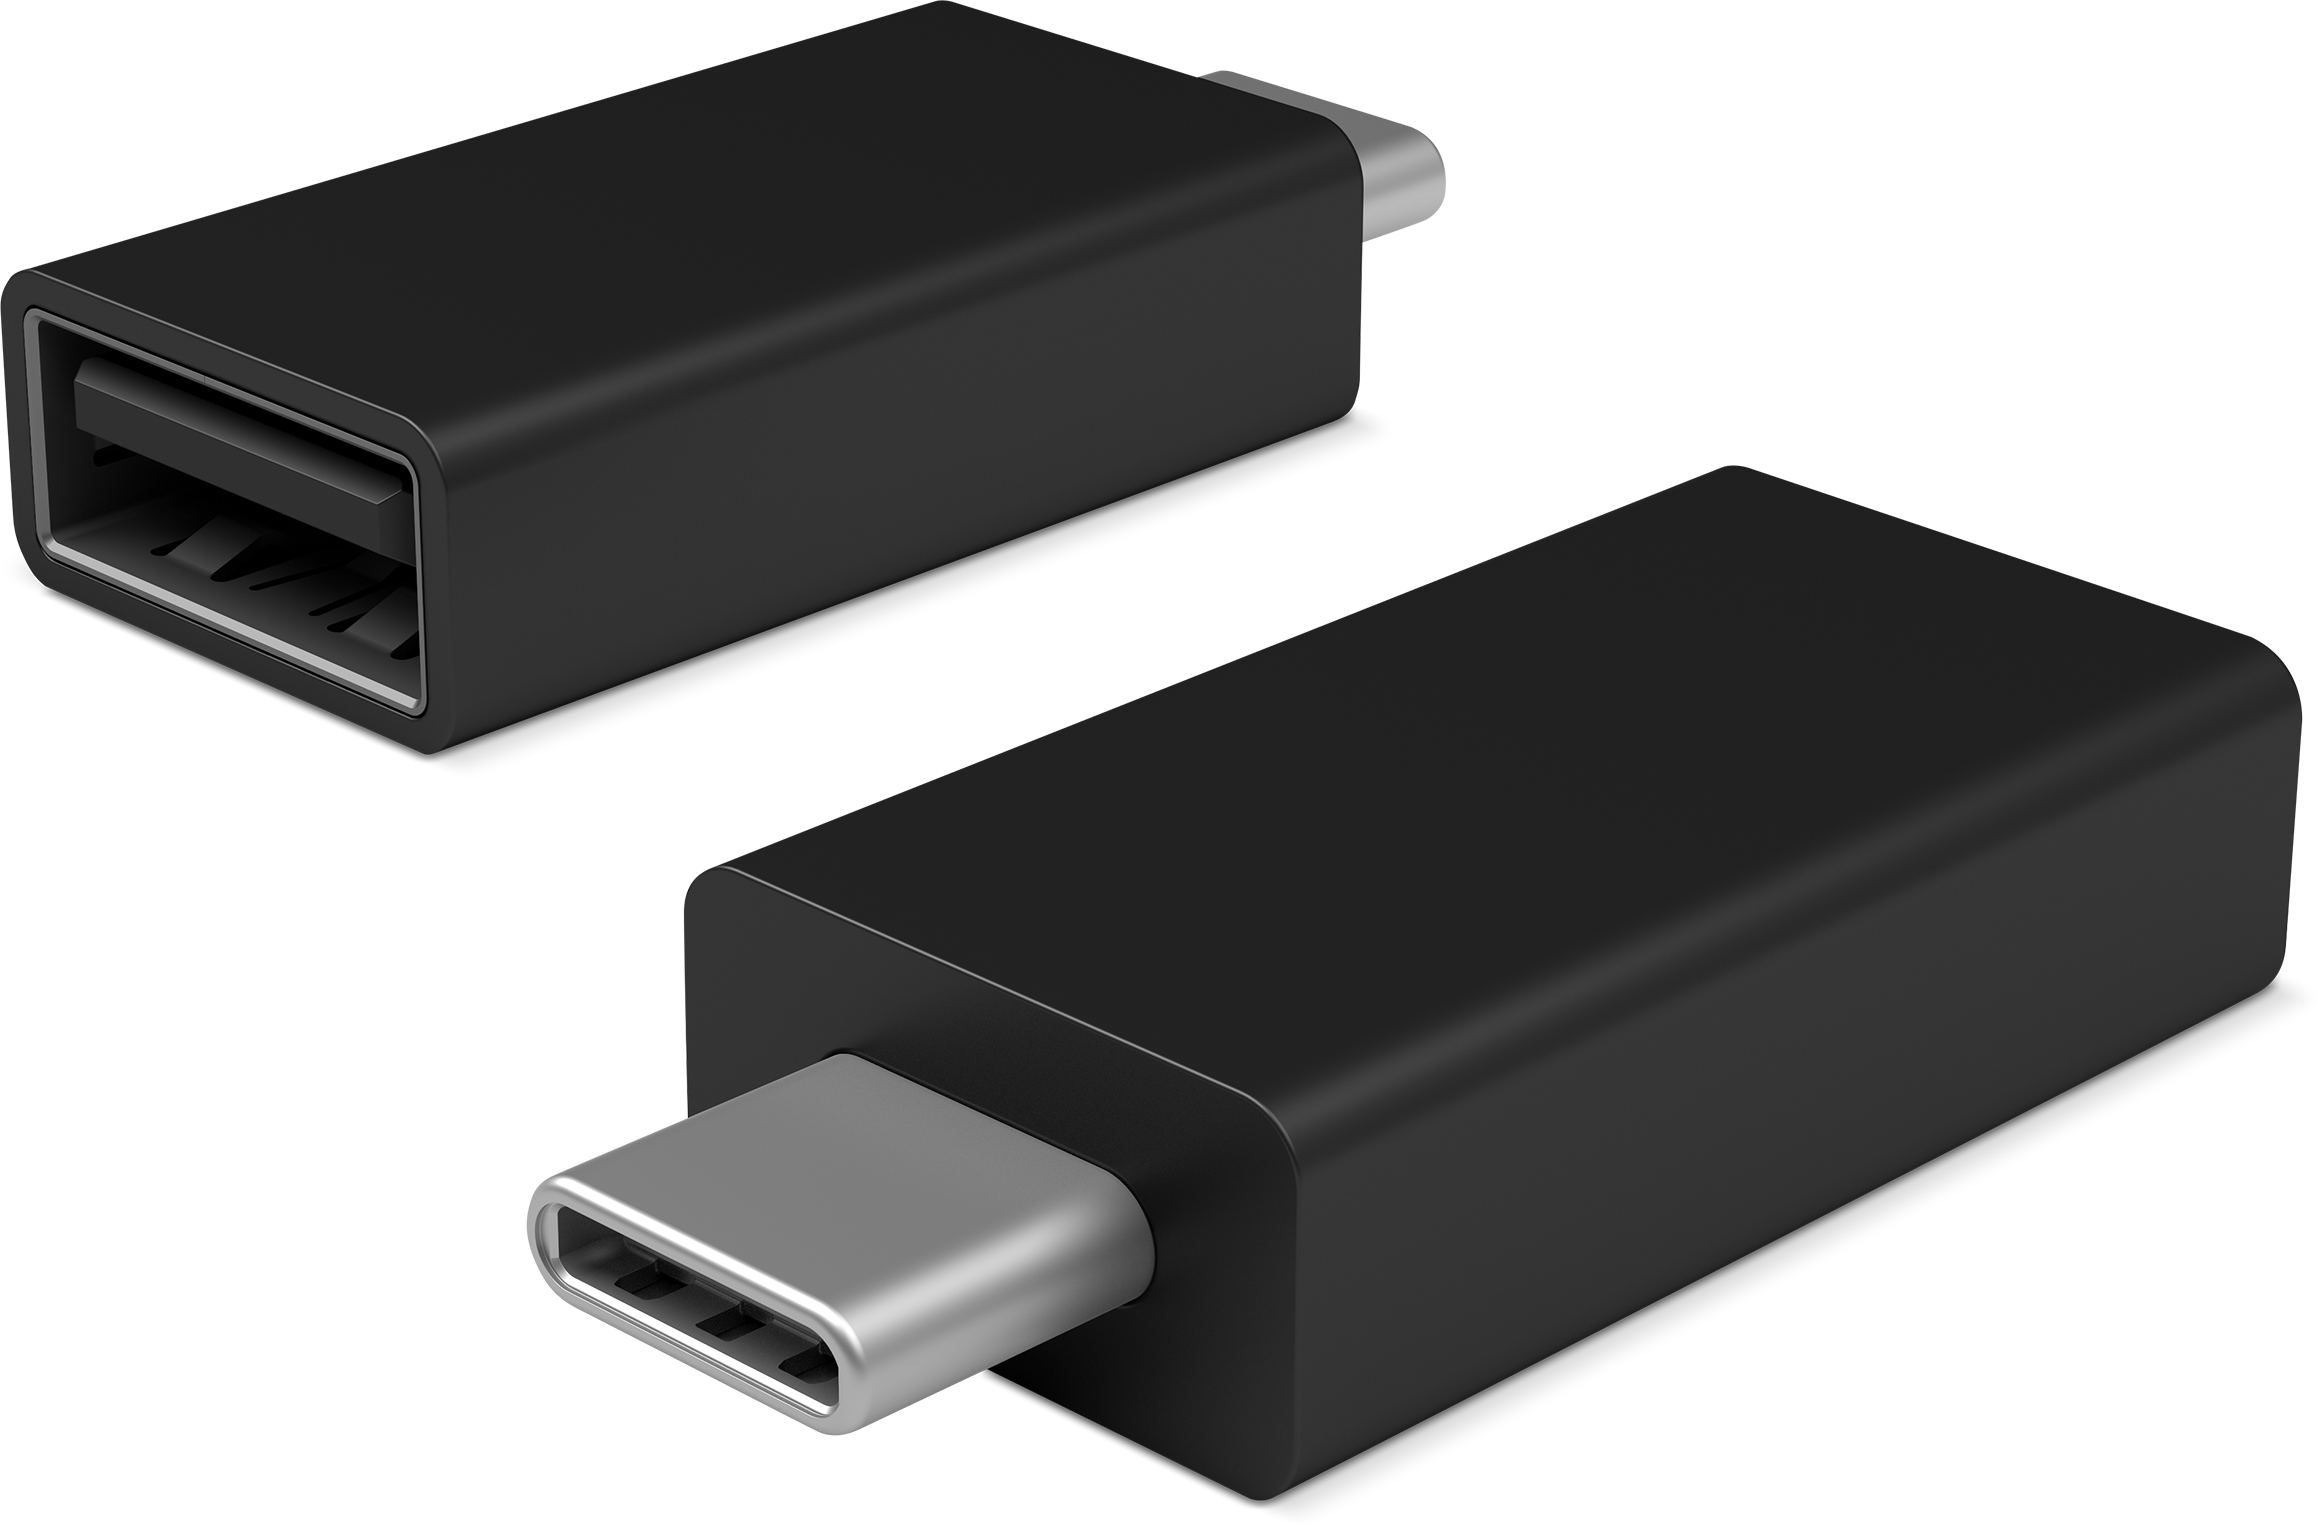 RE2of0I?ver=3e78 - Surface USB-C to USB Adapter